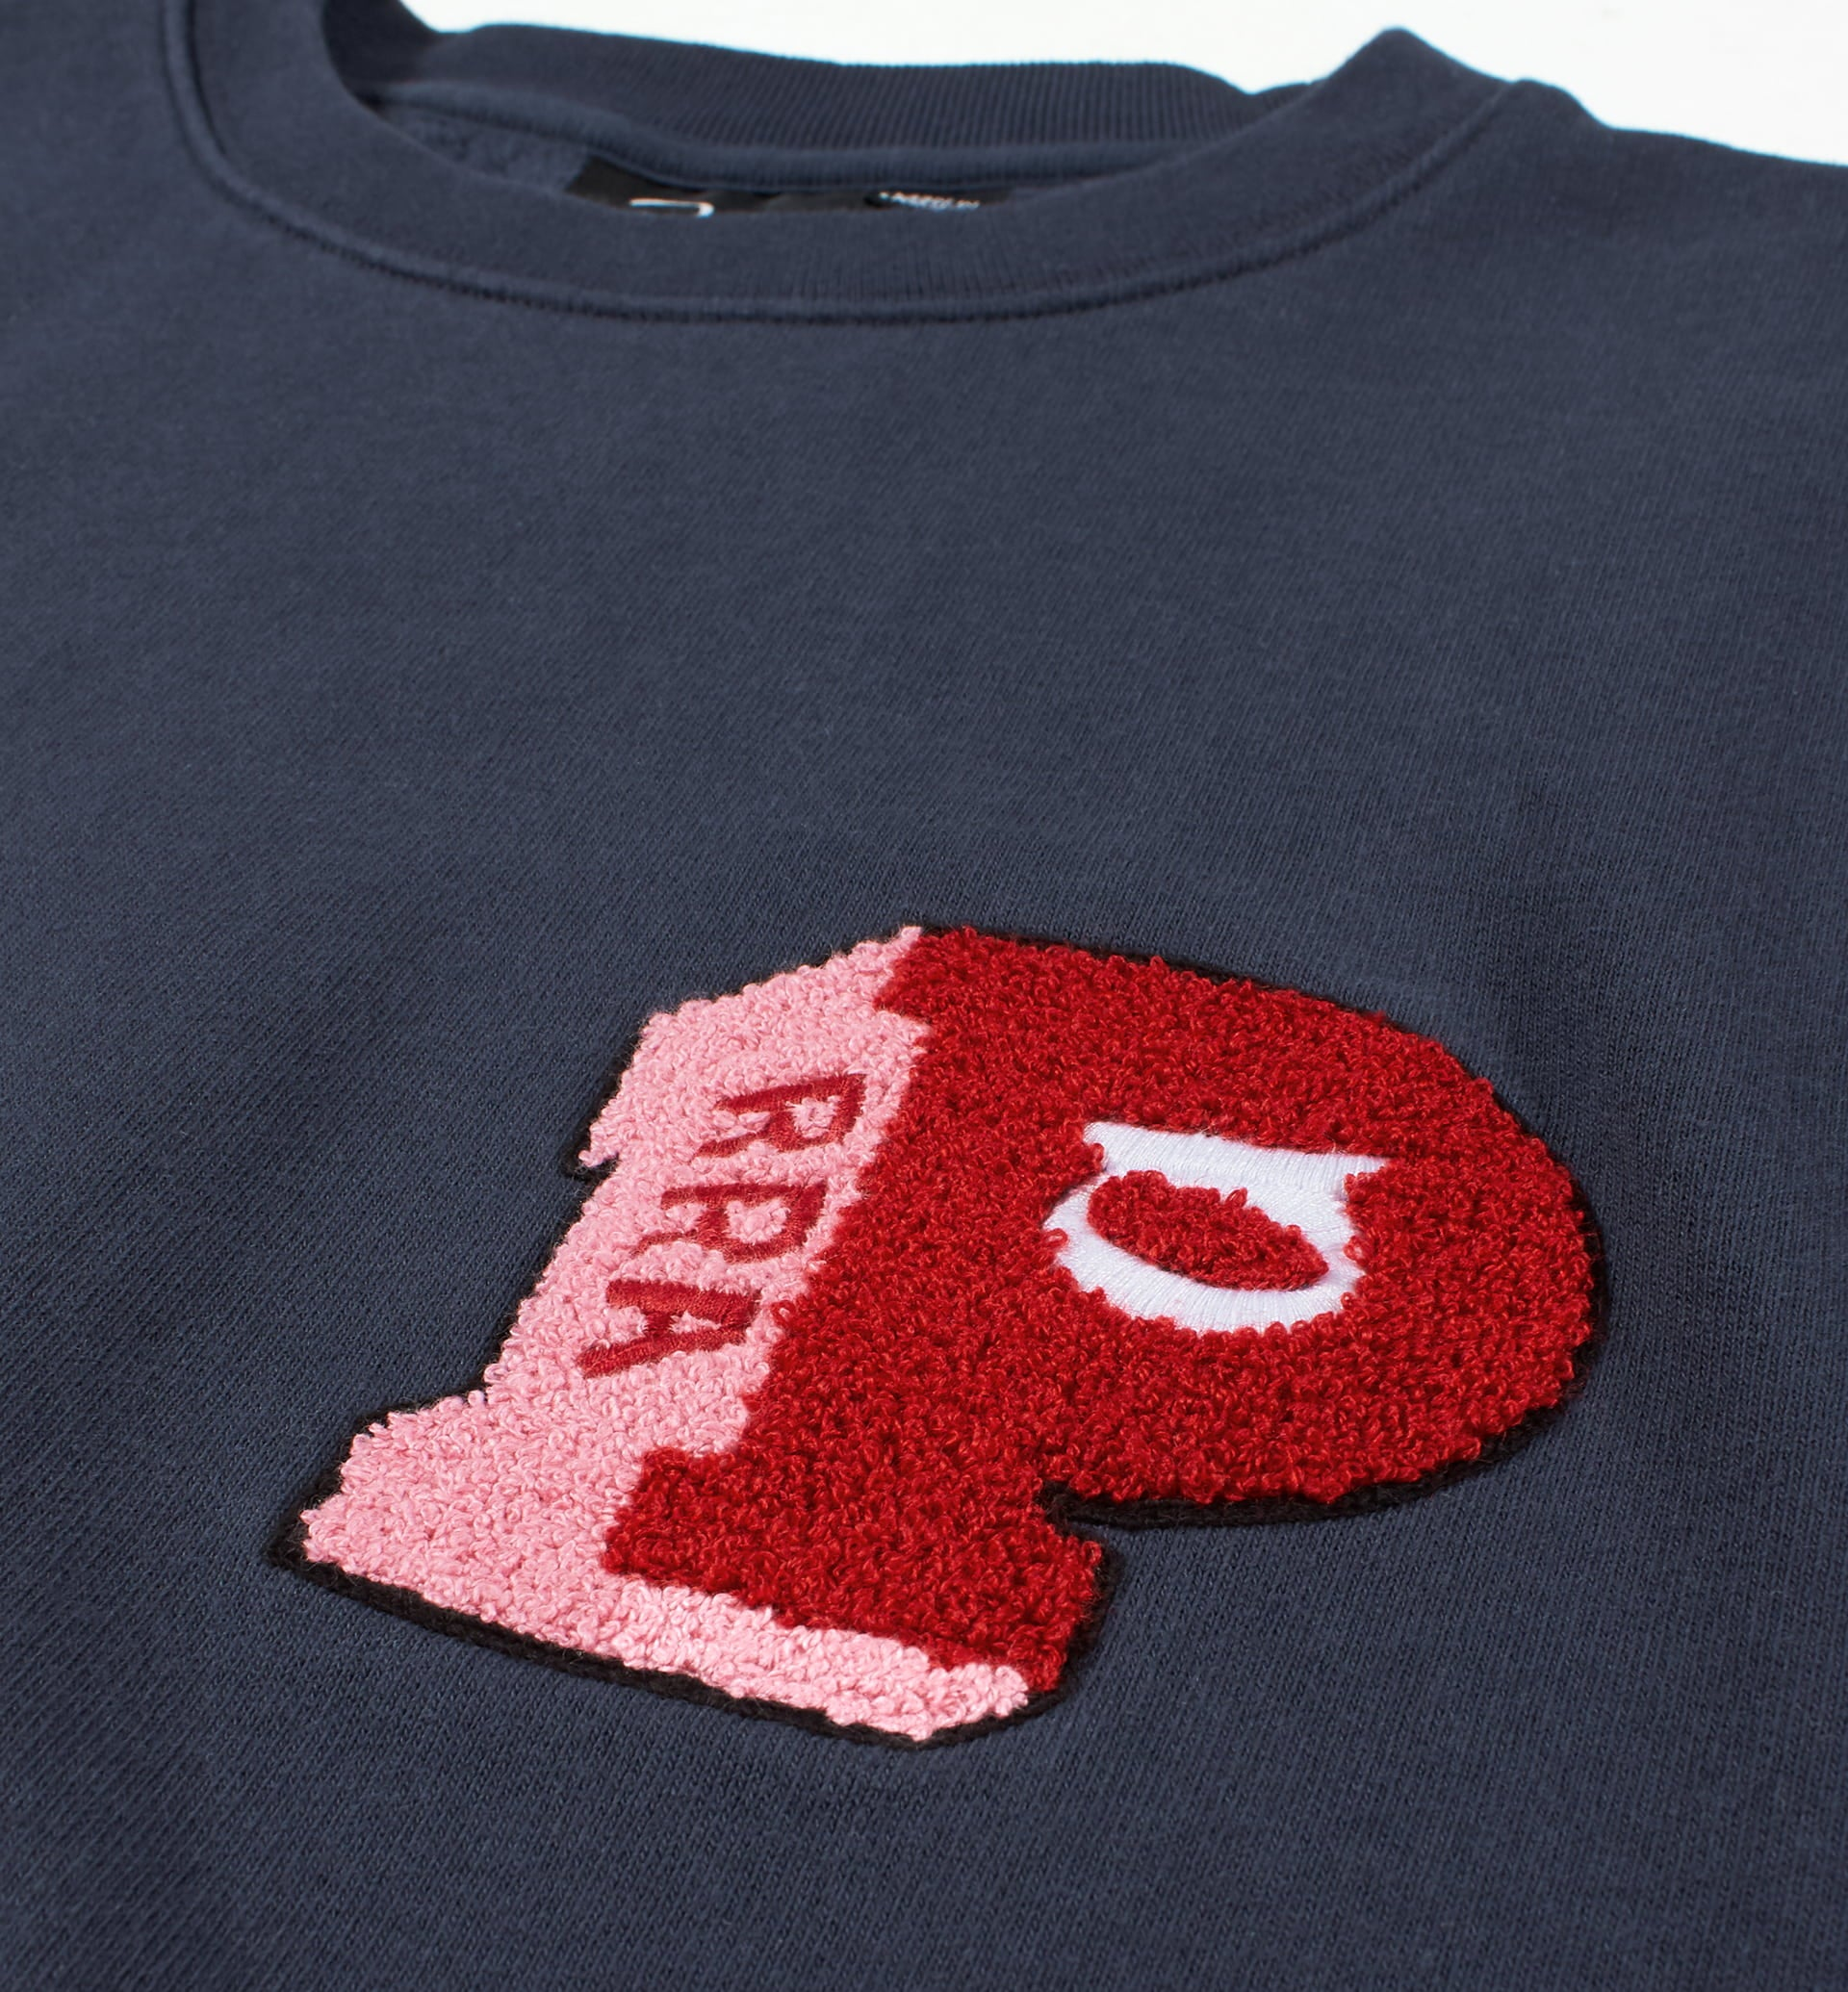 Parra - block P crew neck sweatshirt